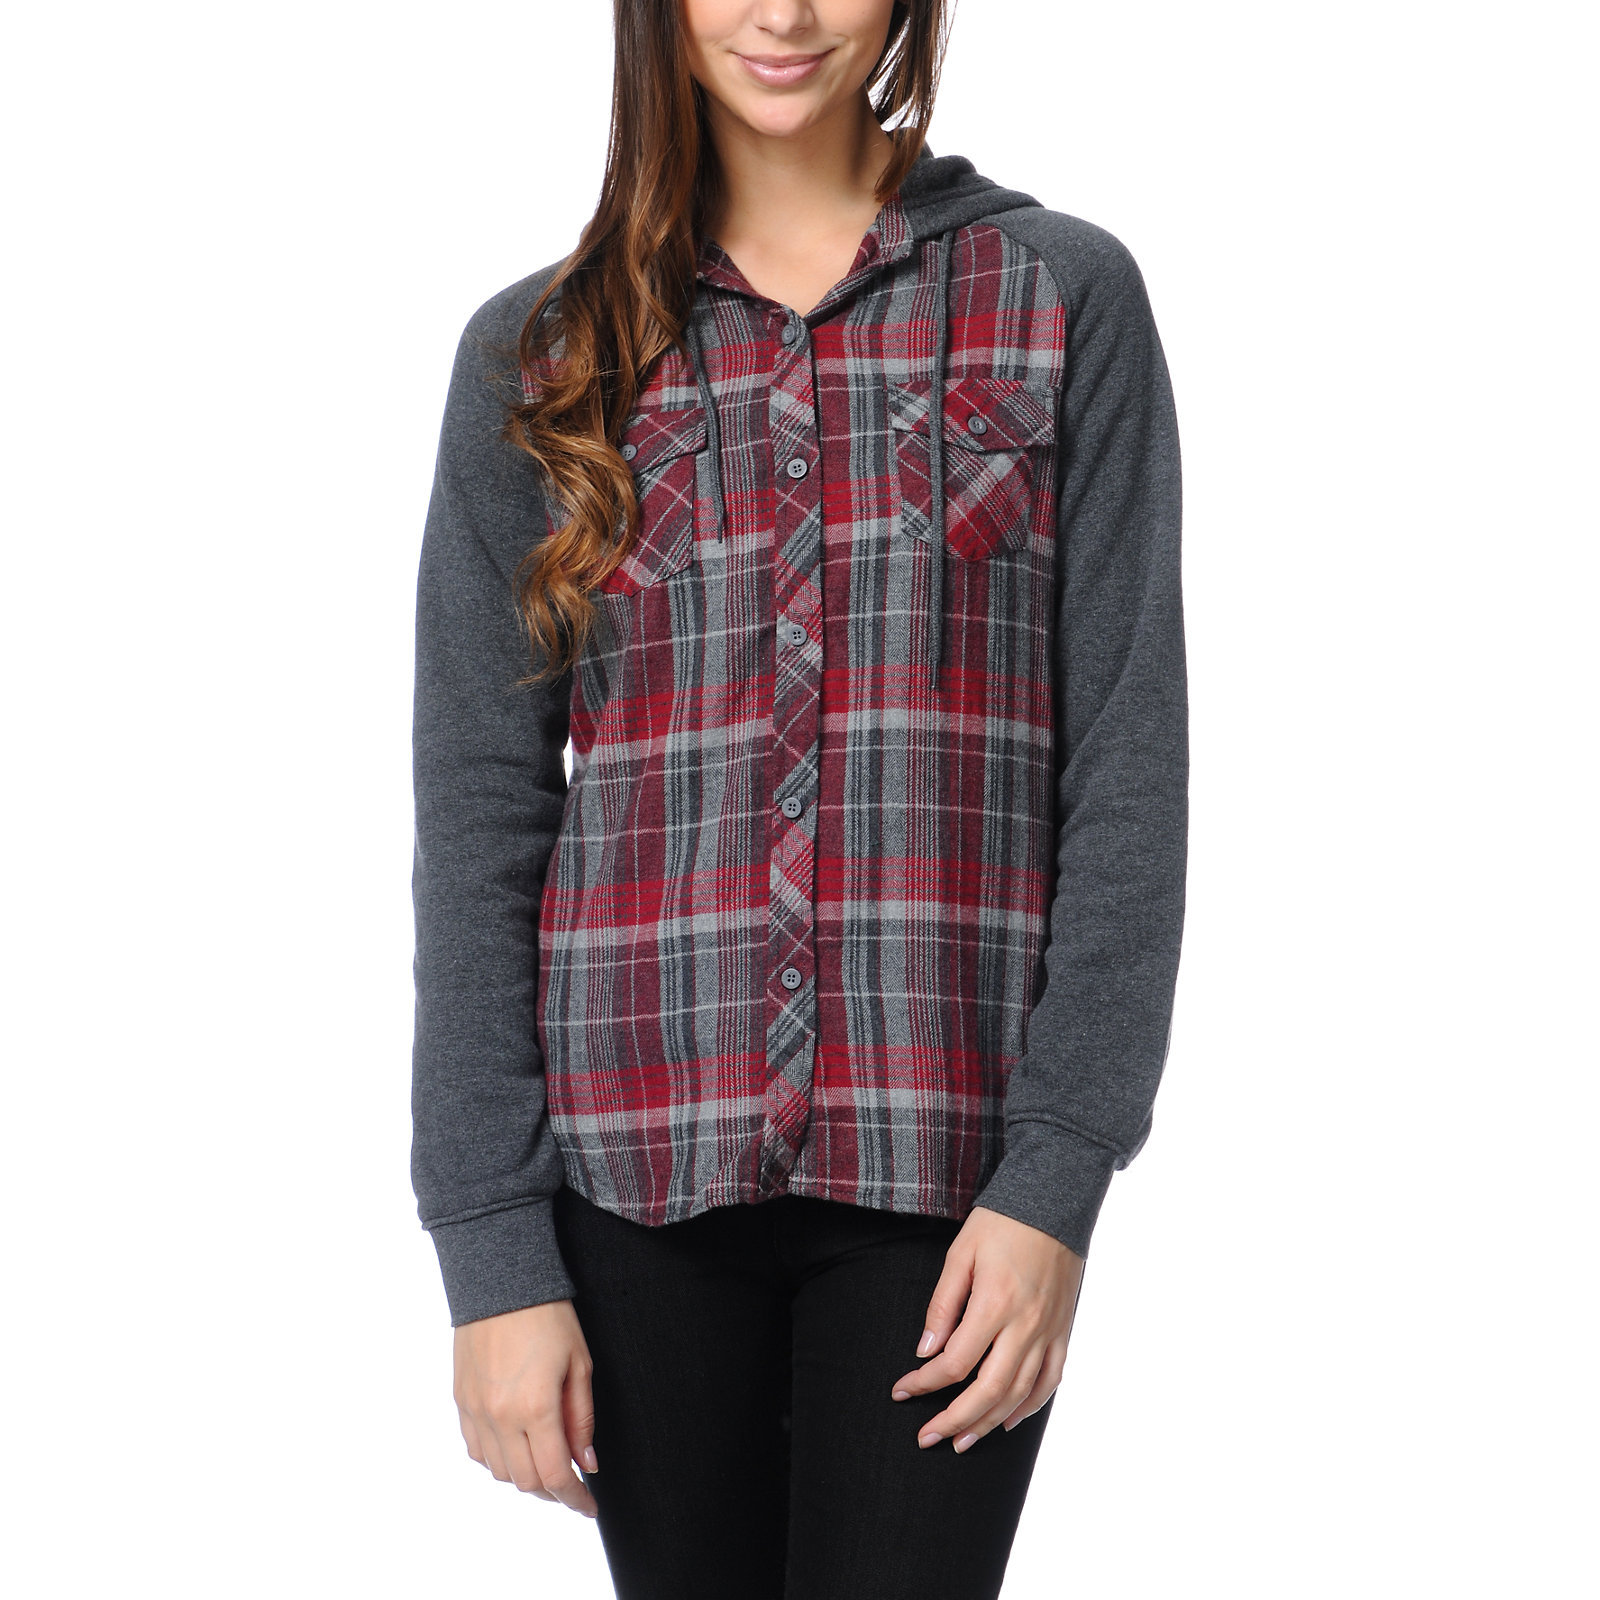 Shop for girls flannel shirt online at Target. Free shipping on purchases over $35 and save 5% every day with your Target REDcard.